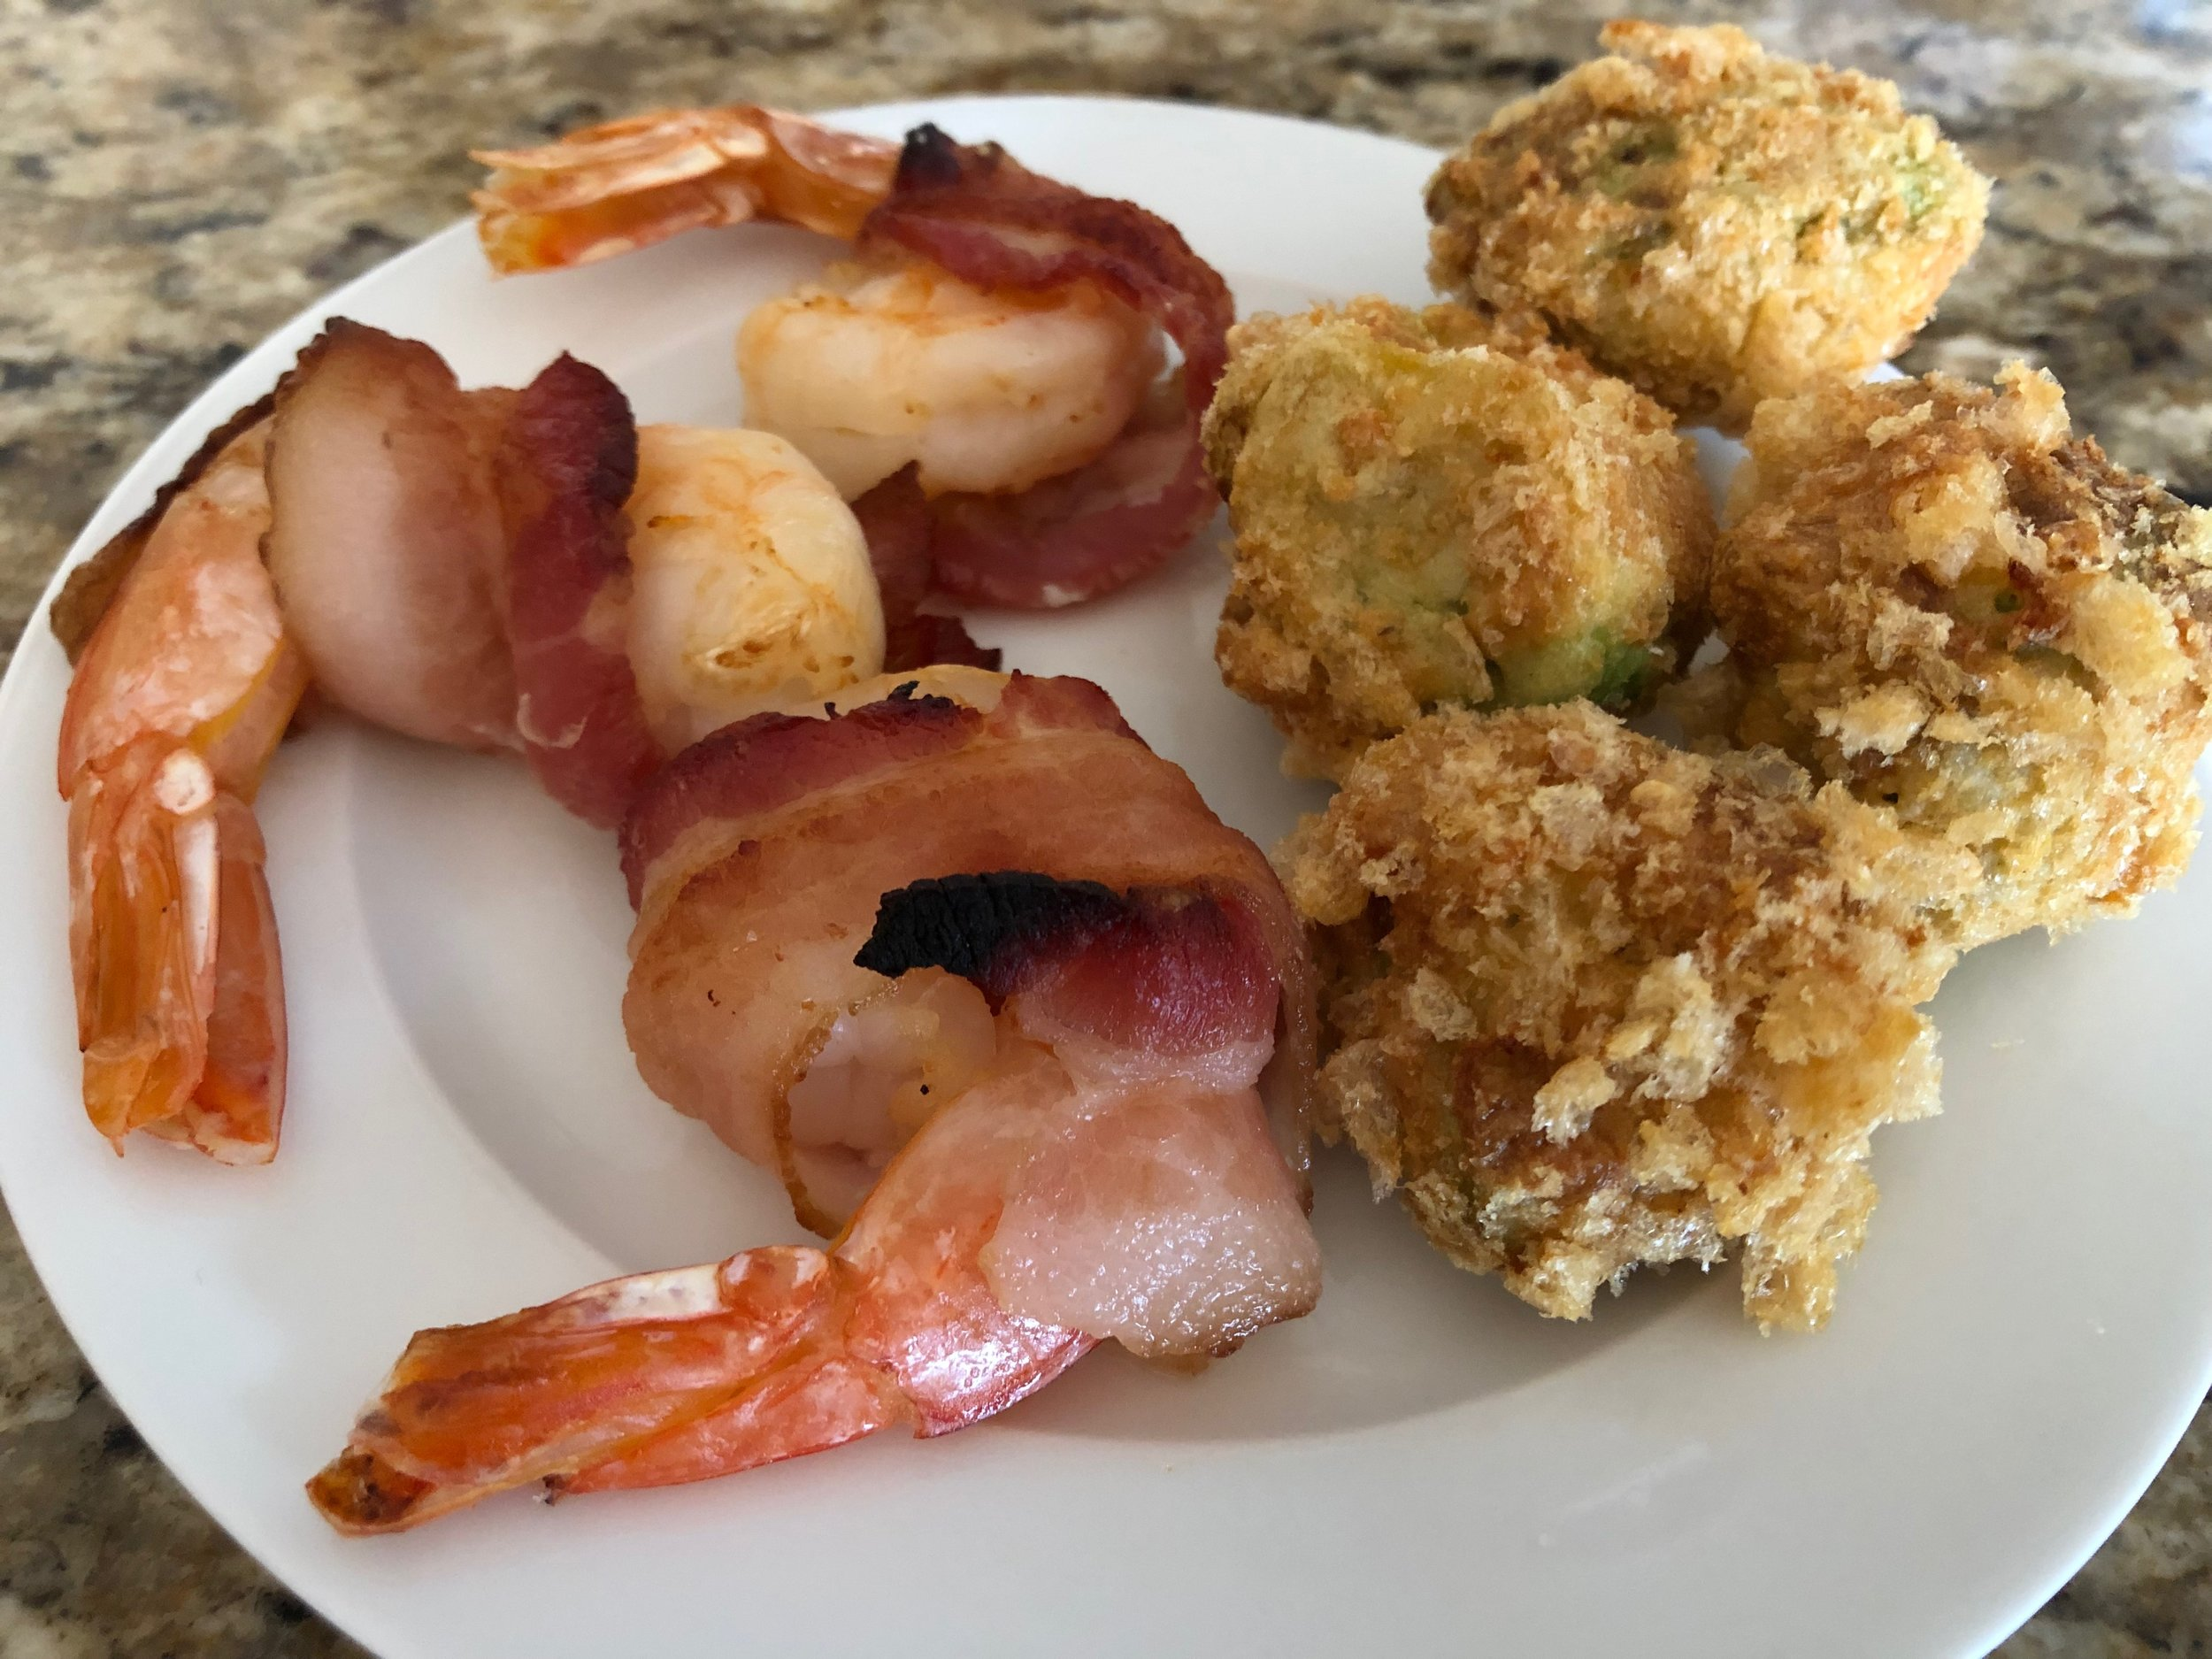 Bacon Wrapped Shrimp and Fried Avocados